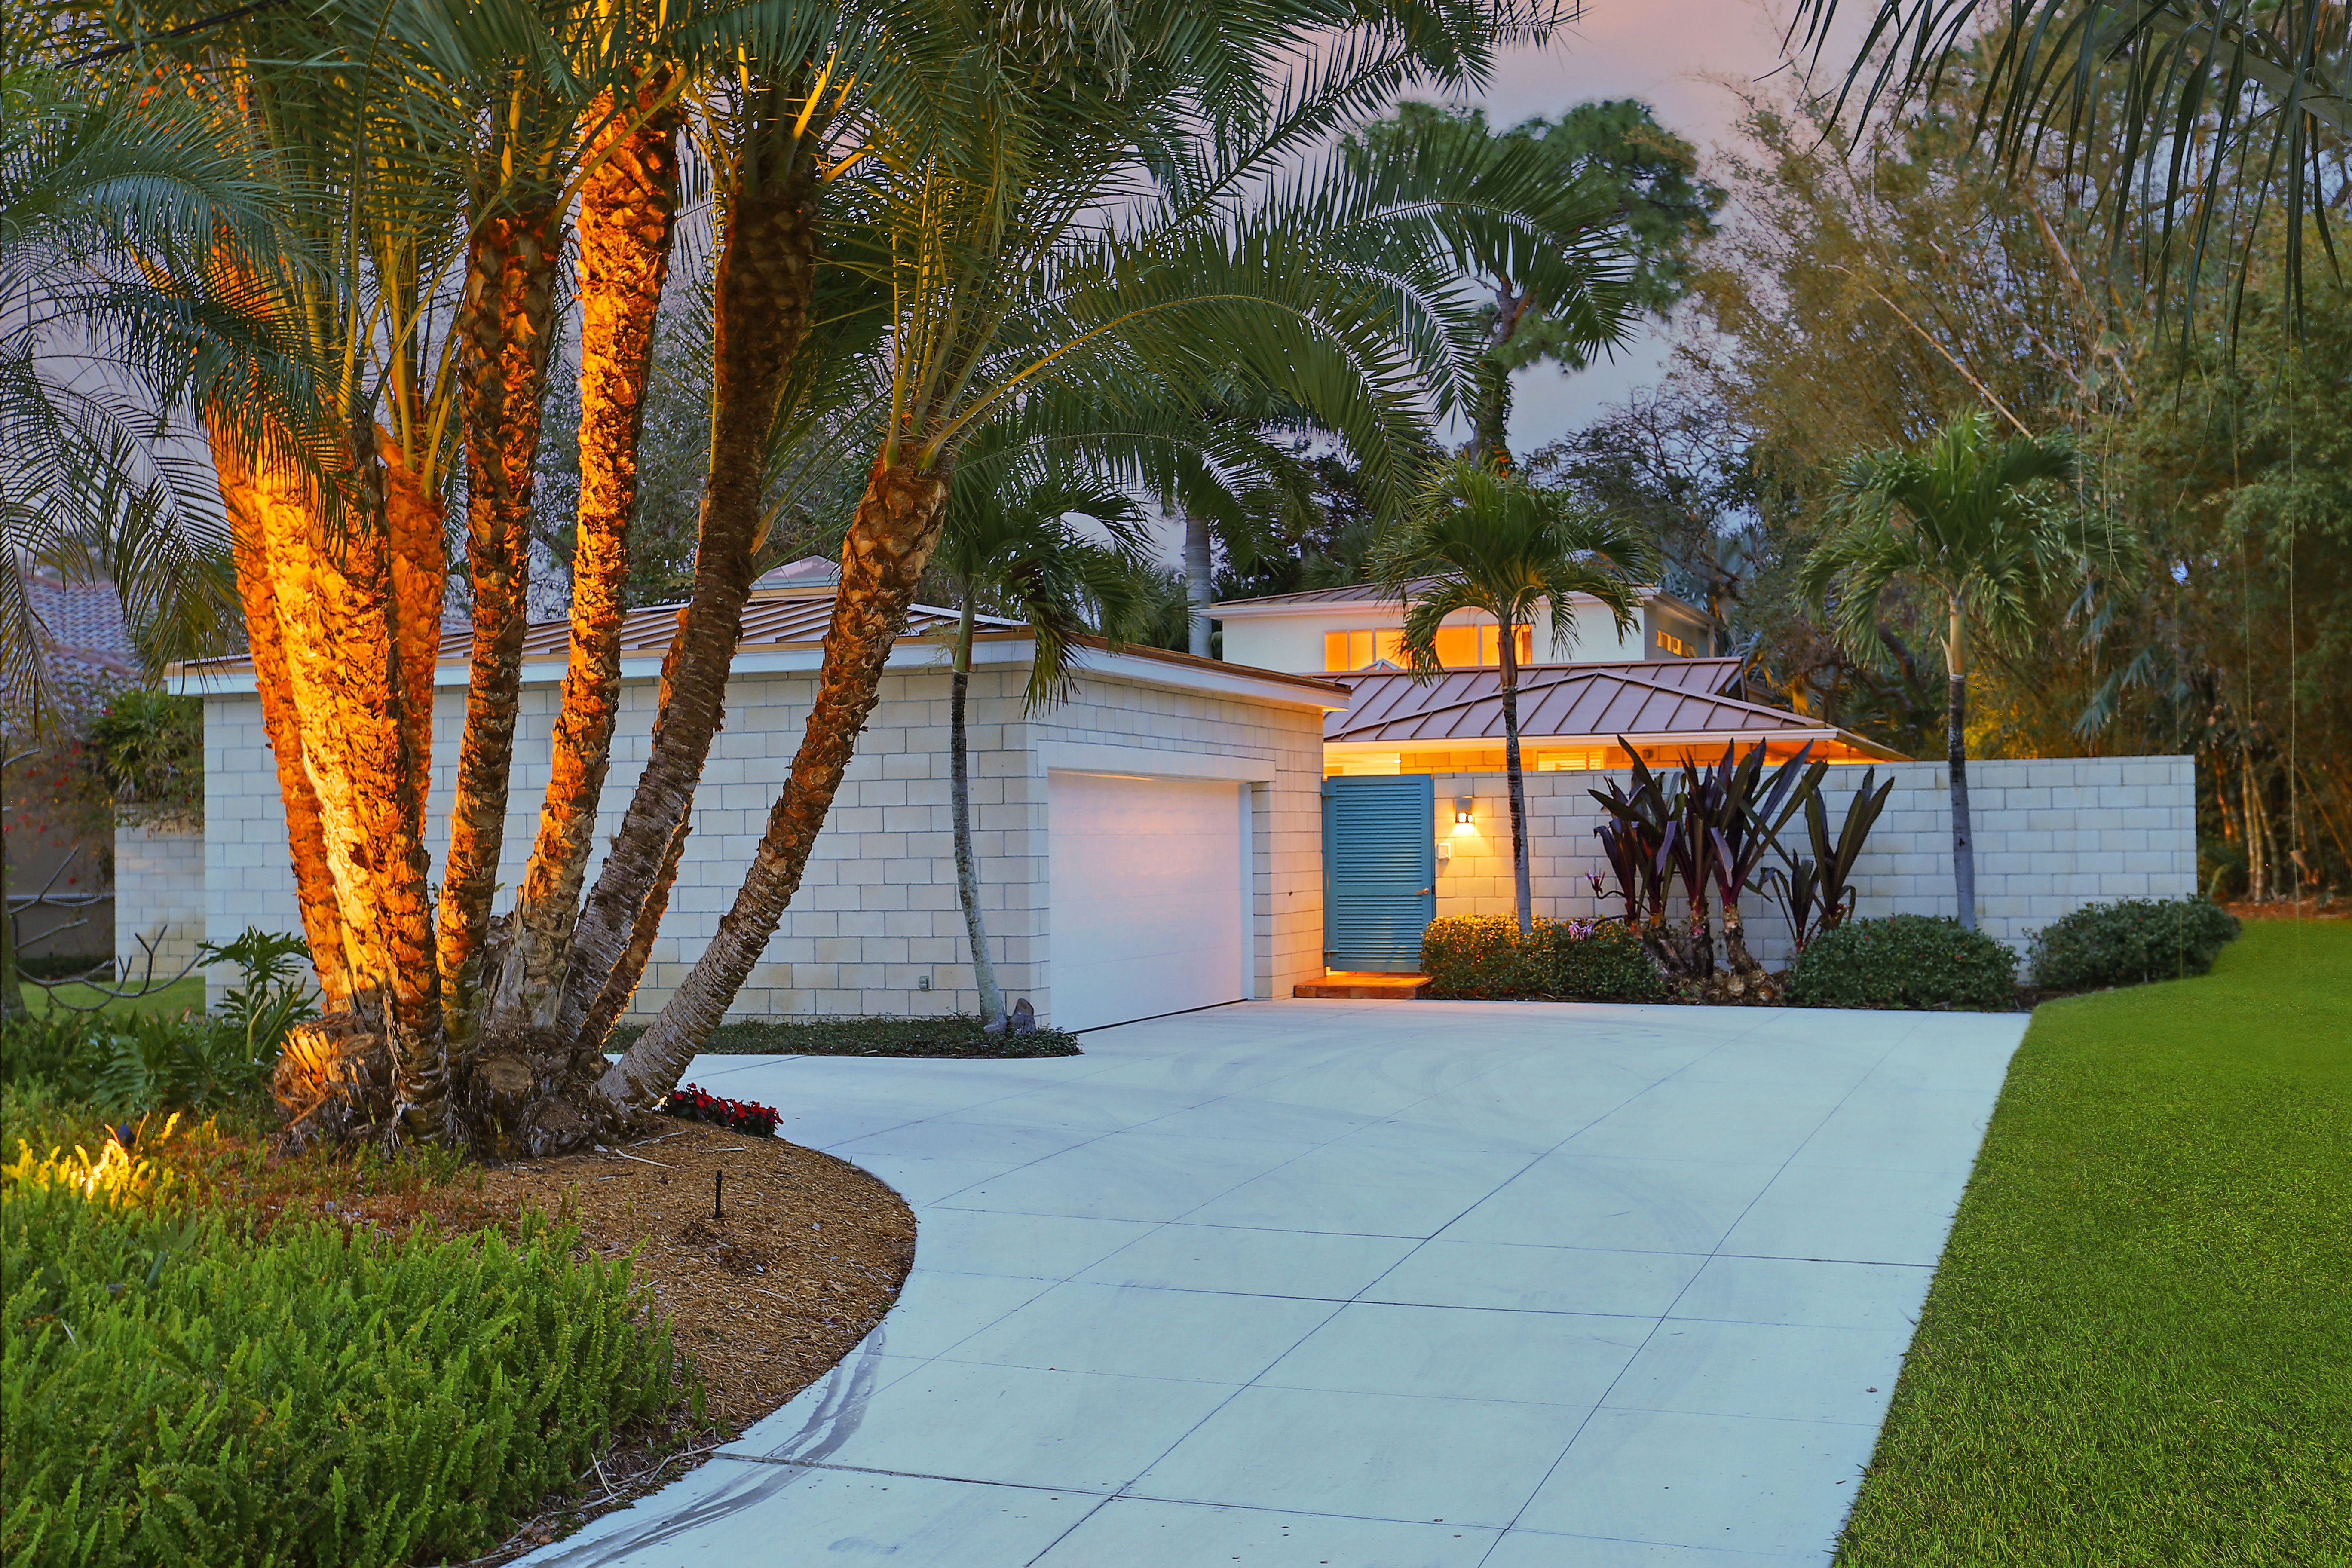 Beautifully preserved midcentury home in Florida asks $1.4M ...